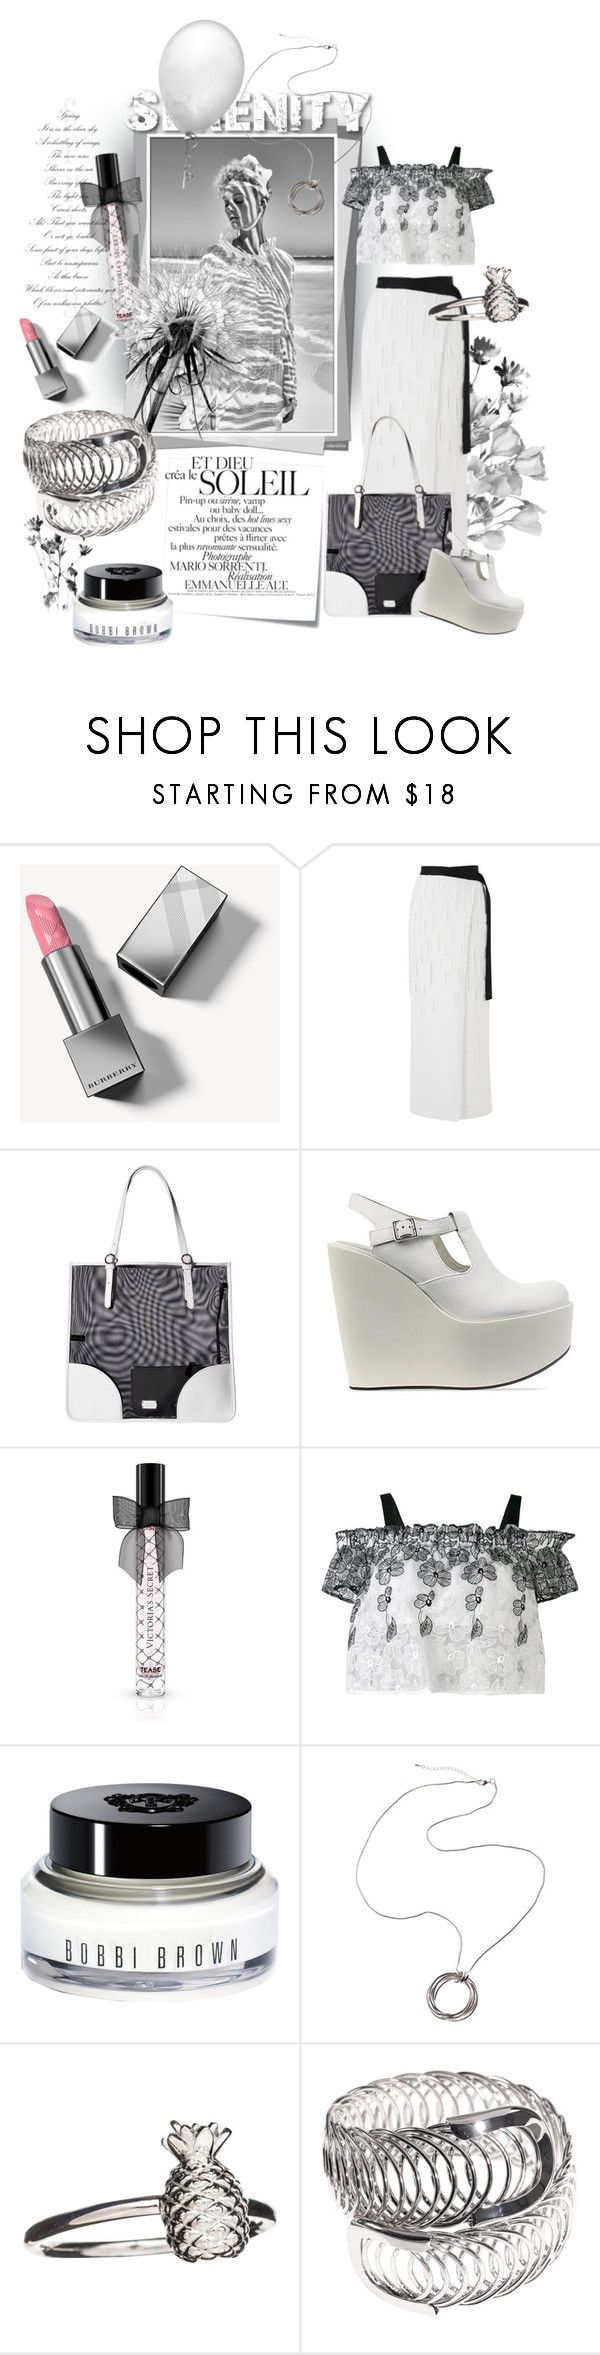 """Serenity #24"" by strawberry-latte ❤ liked on Polyvore featuring Post-It, Burberry, Amanda Wakeley, Frances Valentine, Jil Sander Navy, Victoria's Secret, Blugirl, Bobbi Brown Cosmetics and Rachel Jackson"